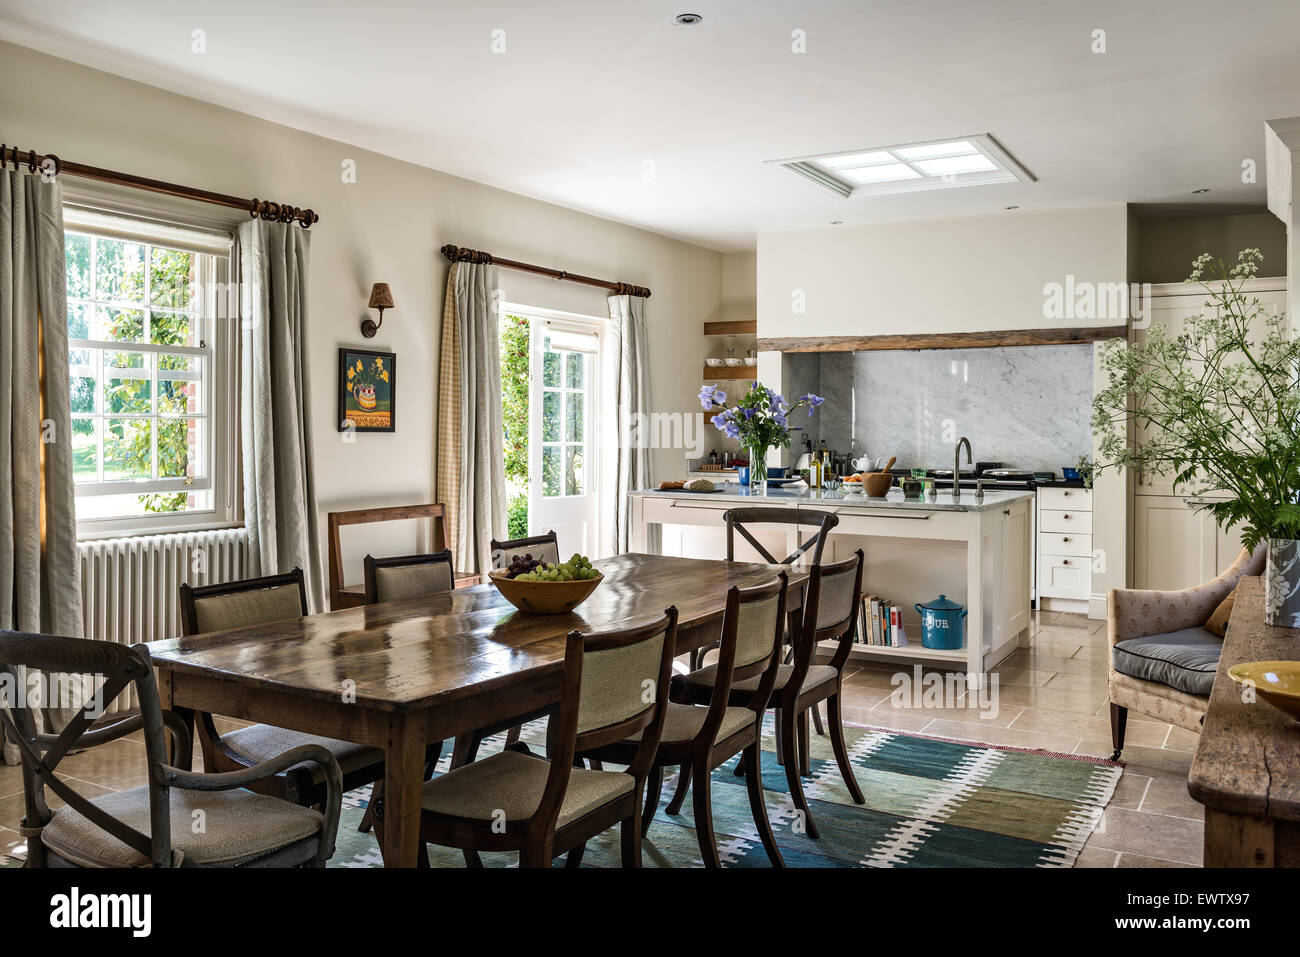 Antique dining table with chairs in open plan kitchen  : antique dining table with chairs in open plan kitchen dining room EWTX97 from www.alamy.com size 1300 x 957 jpeg 196kB